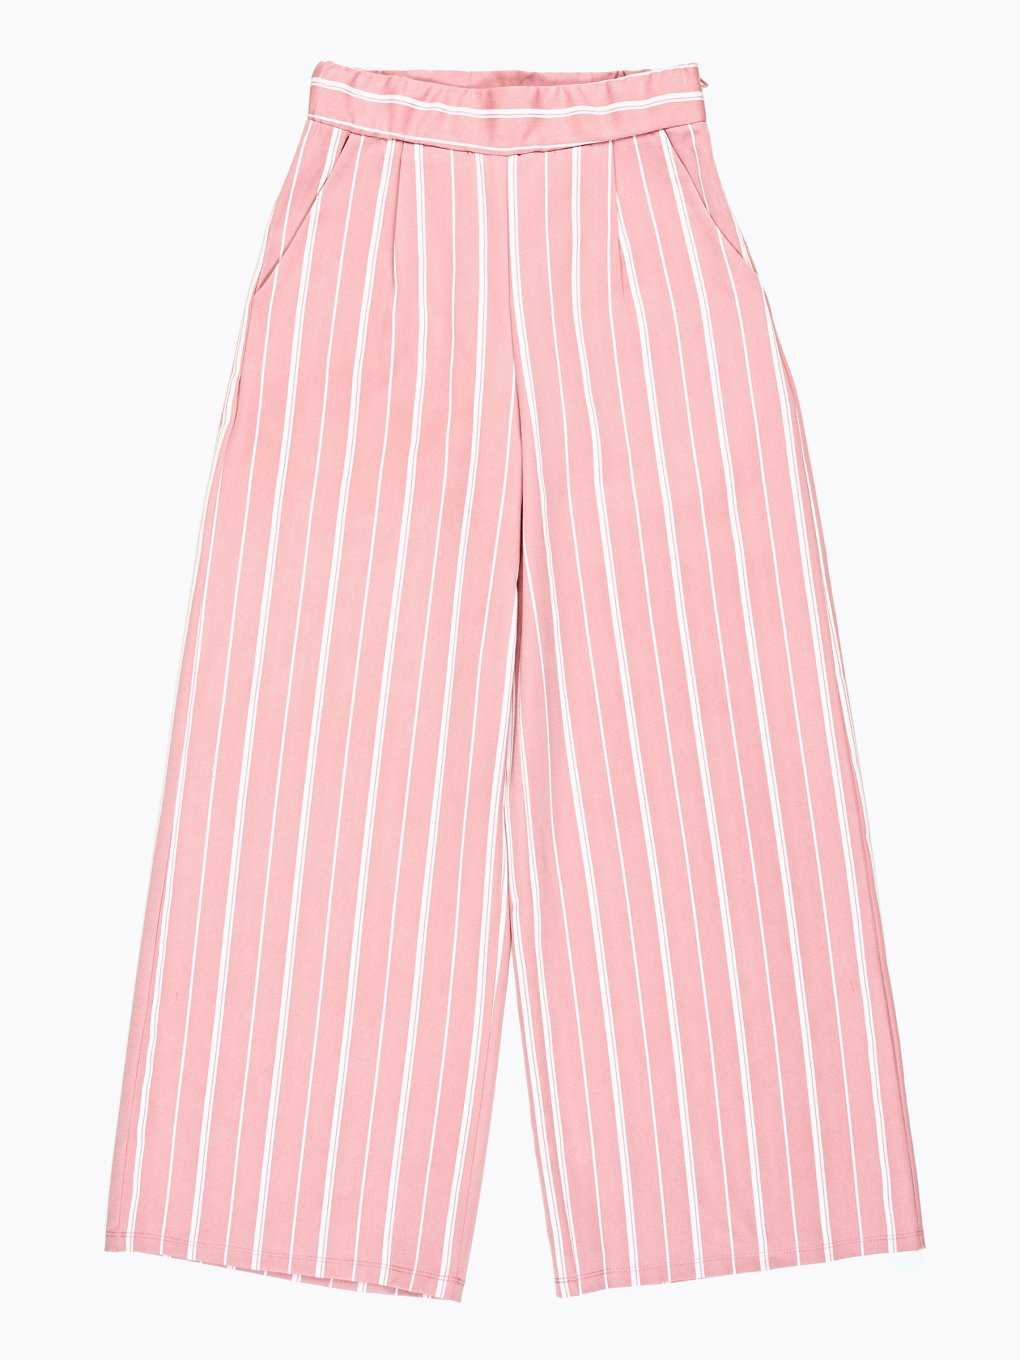 WIDE LEG STRIPED TROUSERS